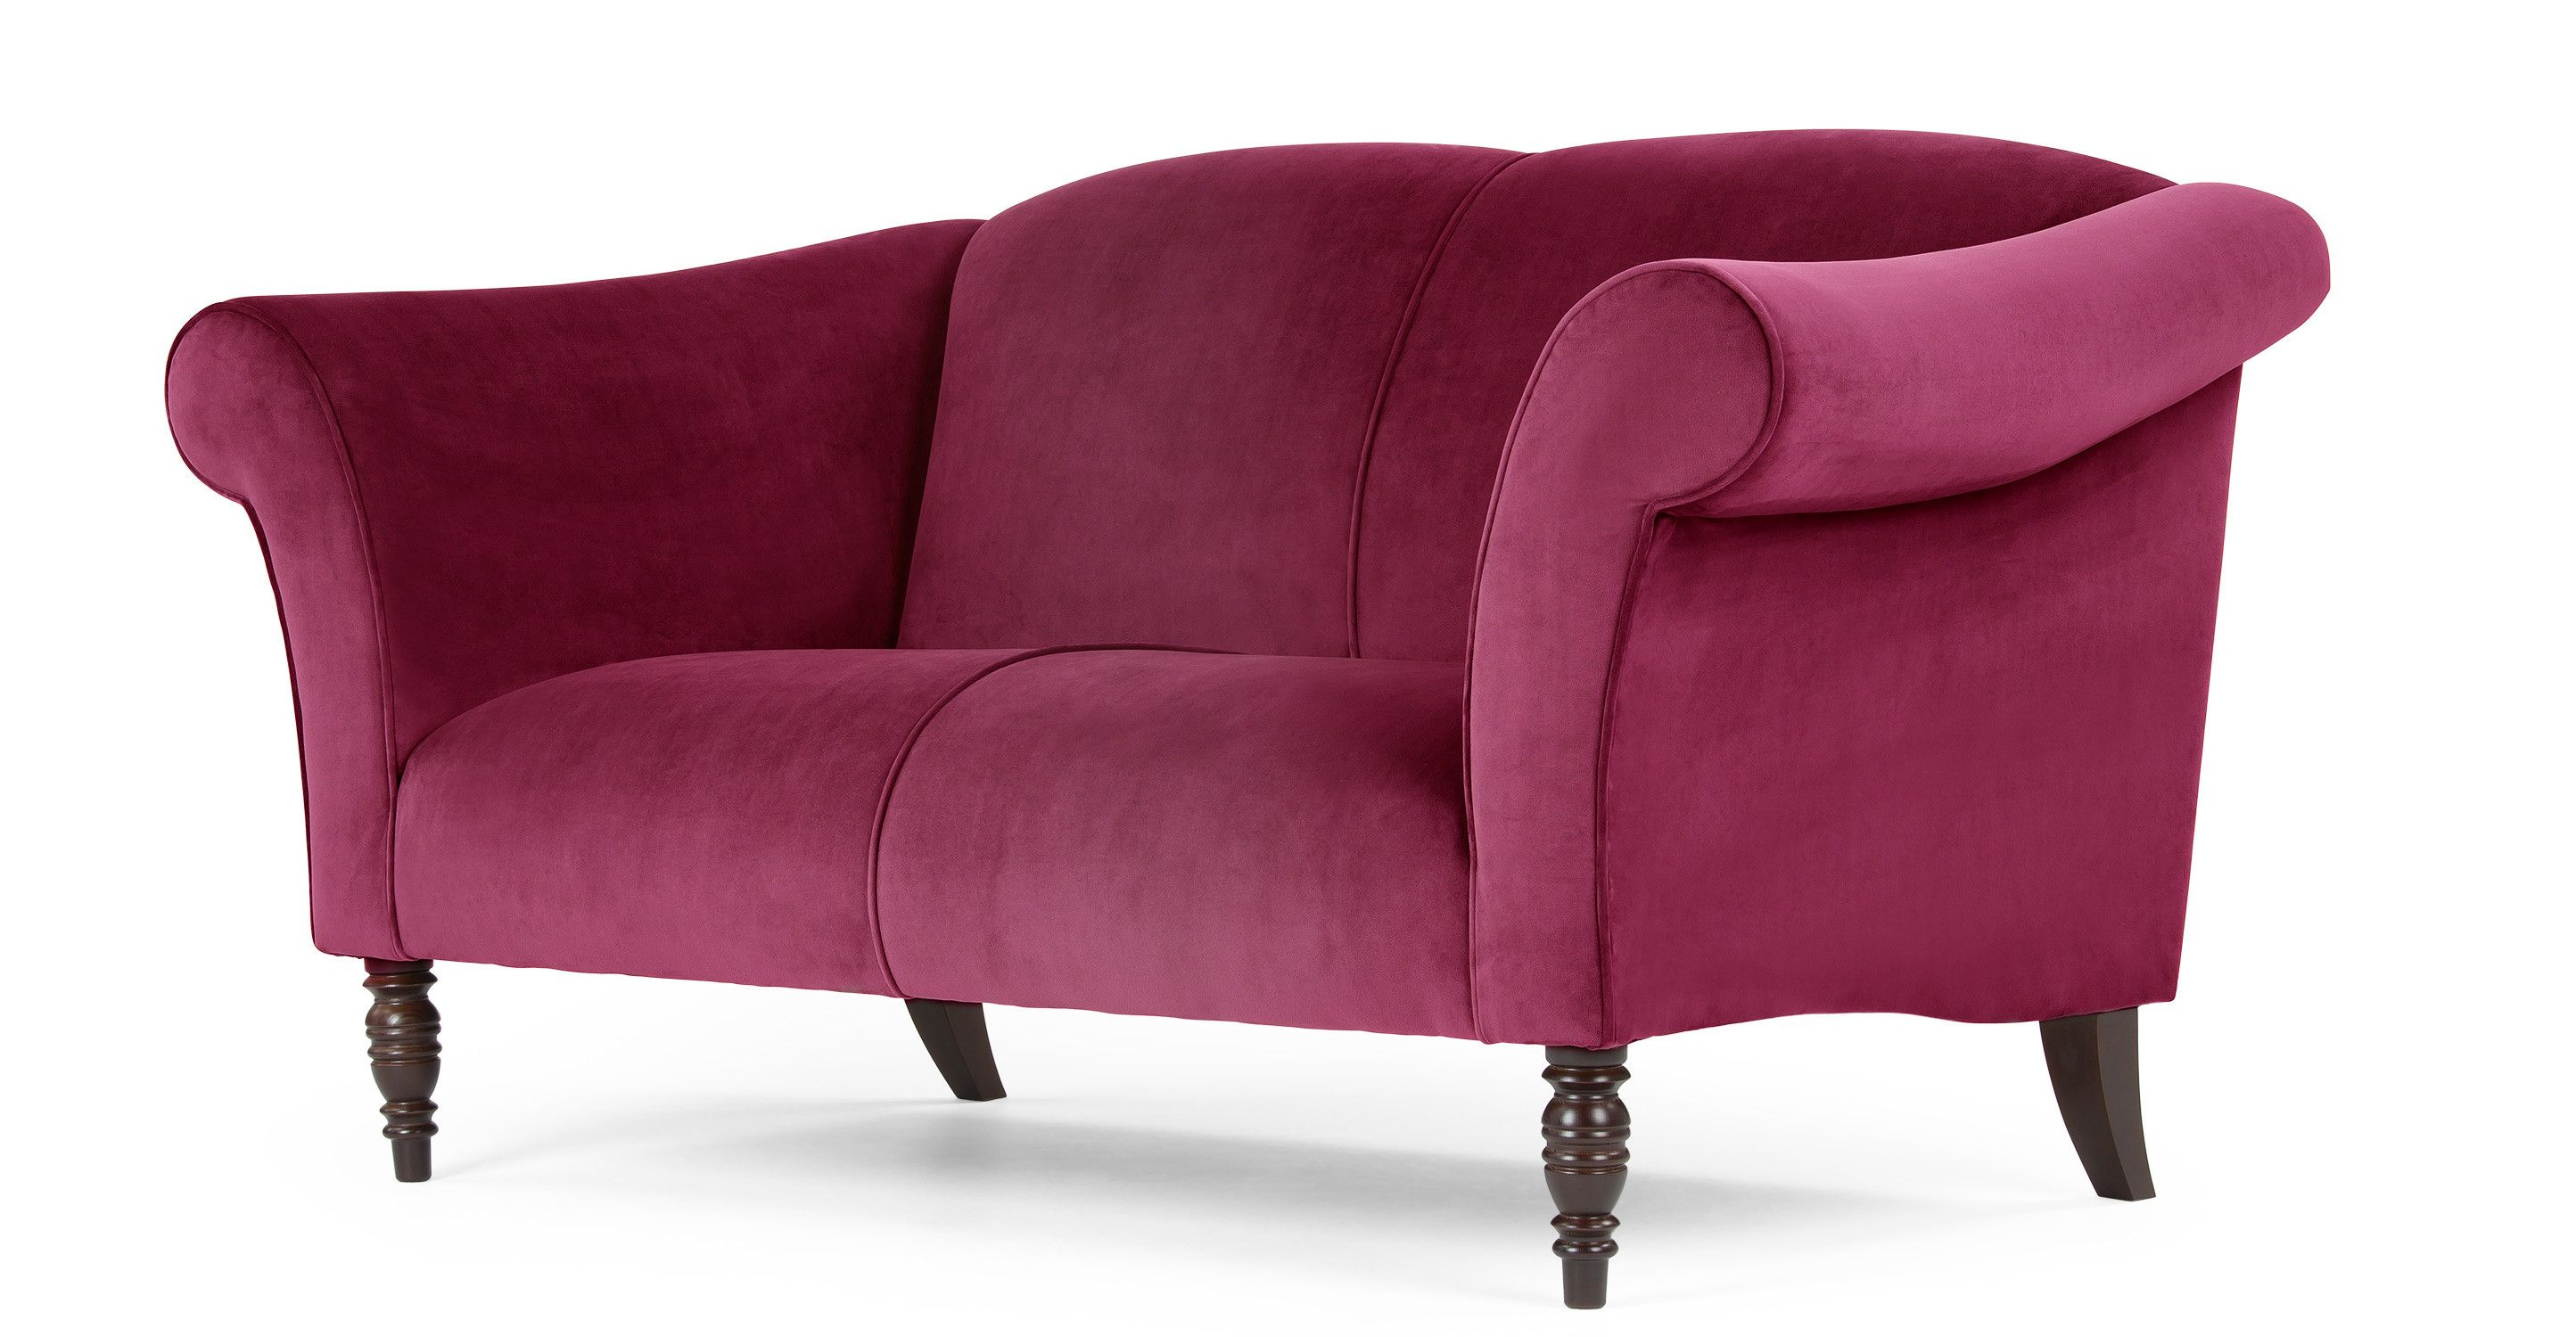 The Garston 2 Seater Sofa In Deep Pink Is An Updated Take On A Classic Silhouette With Images 2 Seater Sofa Retro Sofa Sofa Design